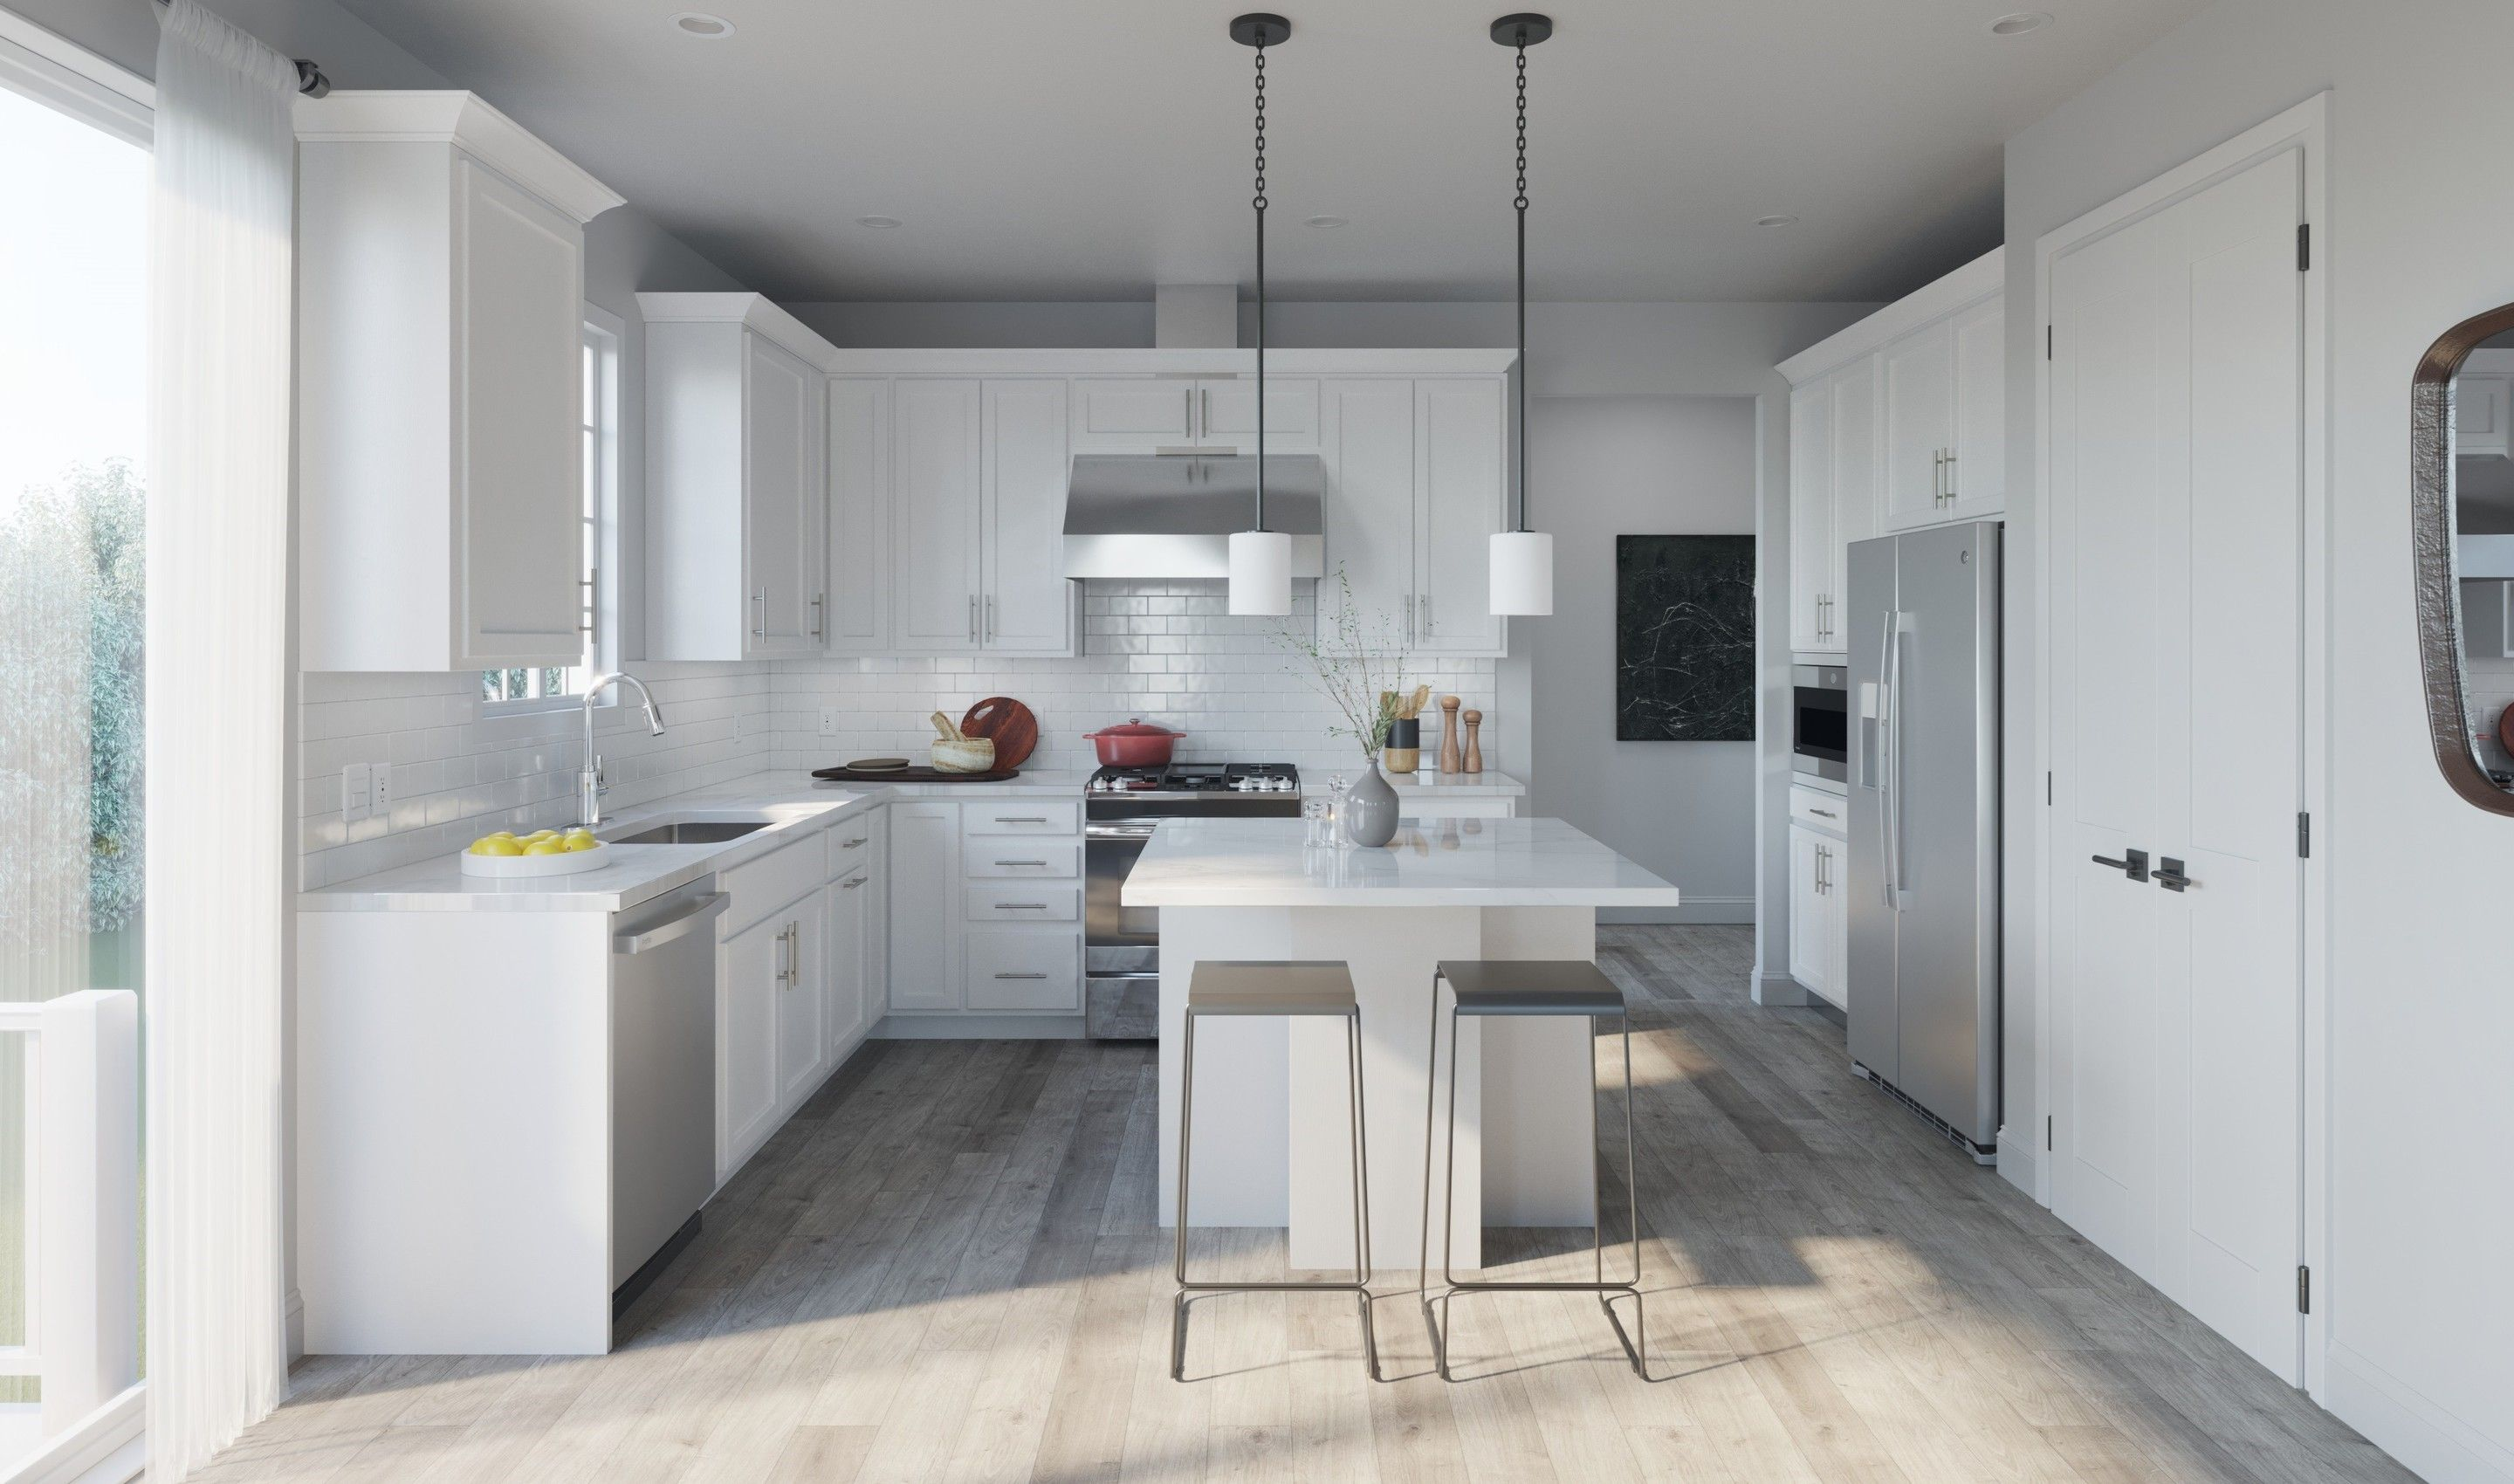 Kitchen featured in the Tomasen By K. Hovnanian® Homes in Middlesex County, NJ